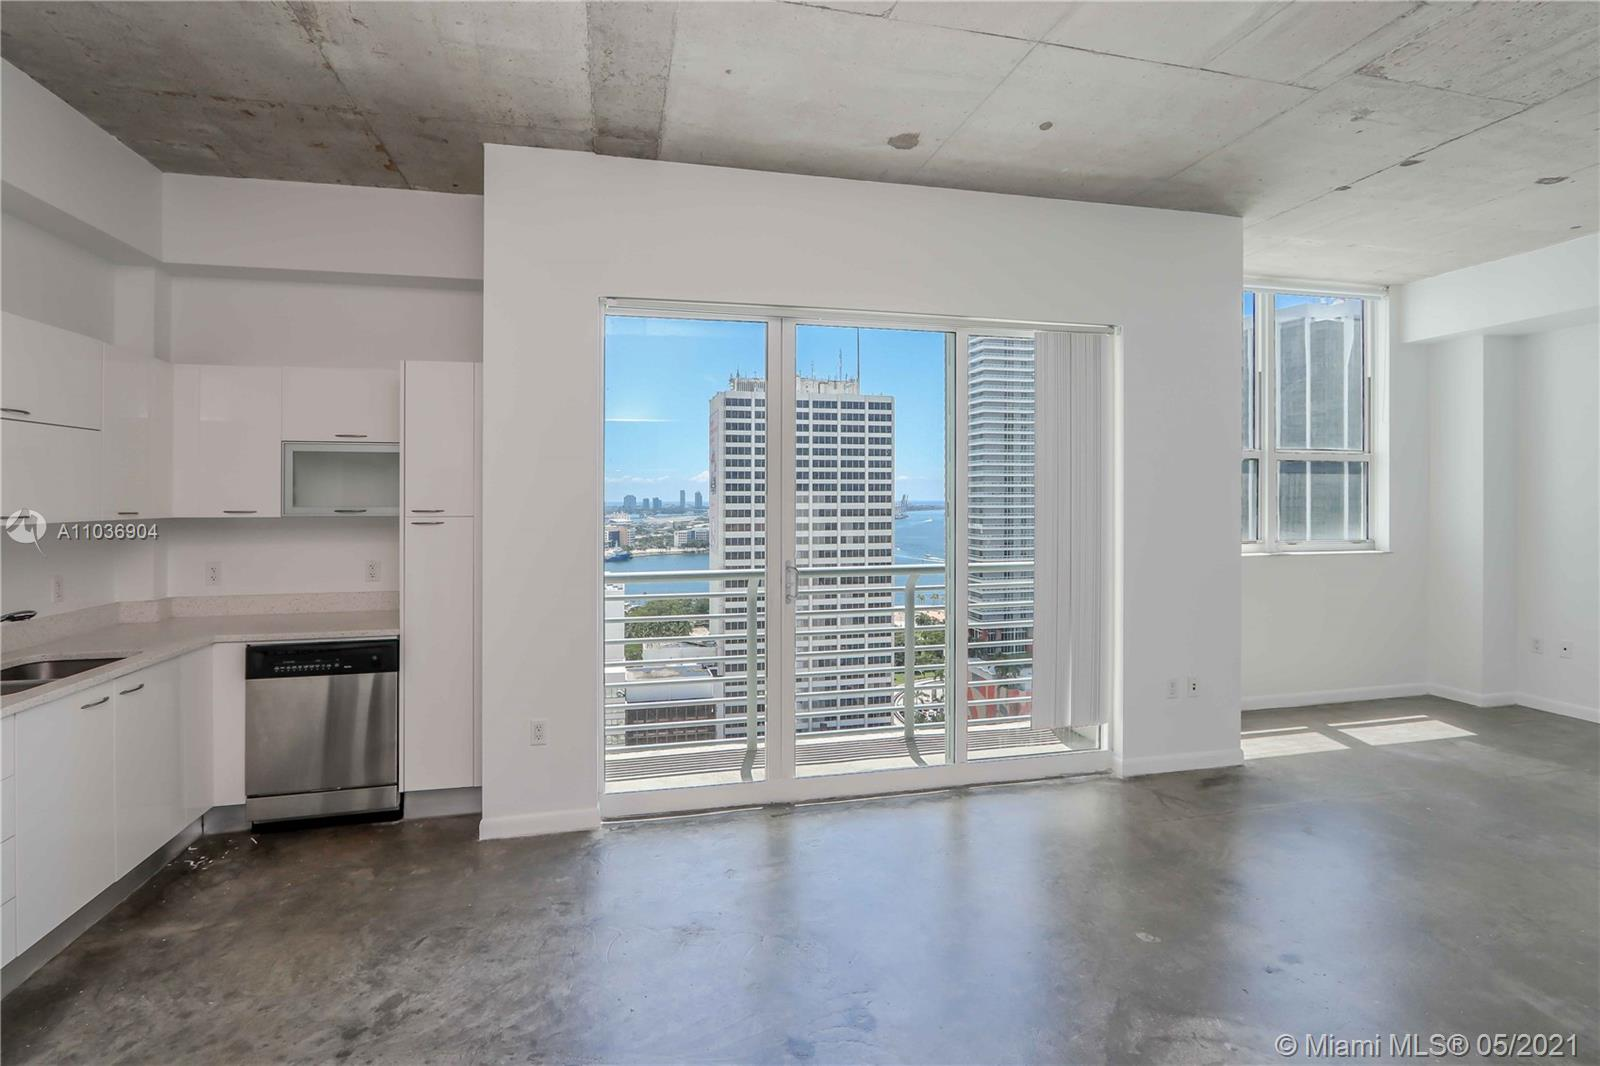 Great 1 bedroom 1 bath loft open style condo with high ceilings overlooking Biscayne Bay and City. Unit comes with Italian white kitchen cabinets and stainless steel appliances and modern bath. Condo includes rooftop pool, Jacuzzi, and fitness center, lap pool, dog park, Lounge room, 24 hours security and concierge. Centrally located within minutes to SoBe, Grove, Gables and Airport.